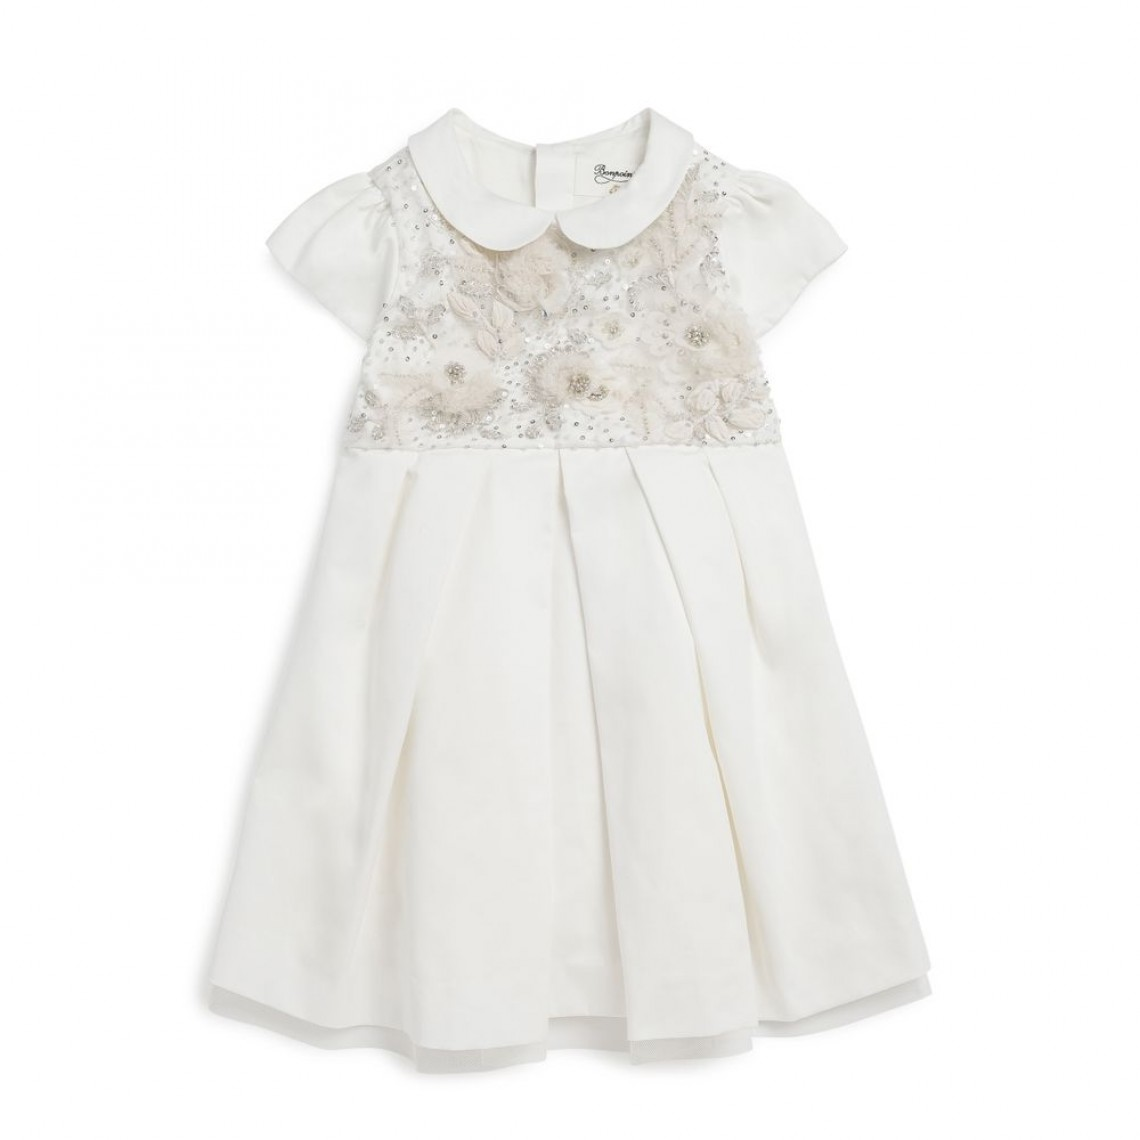 white collared cap sleeve embroidered flower girl dress